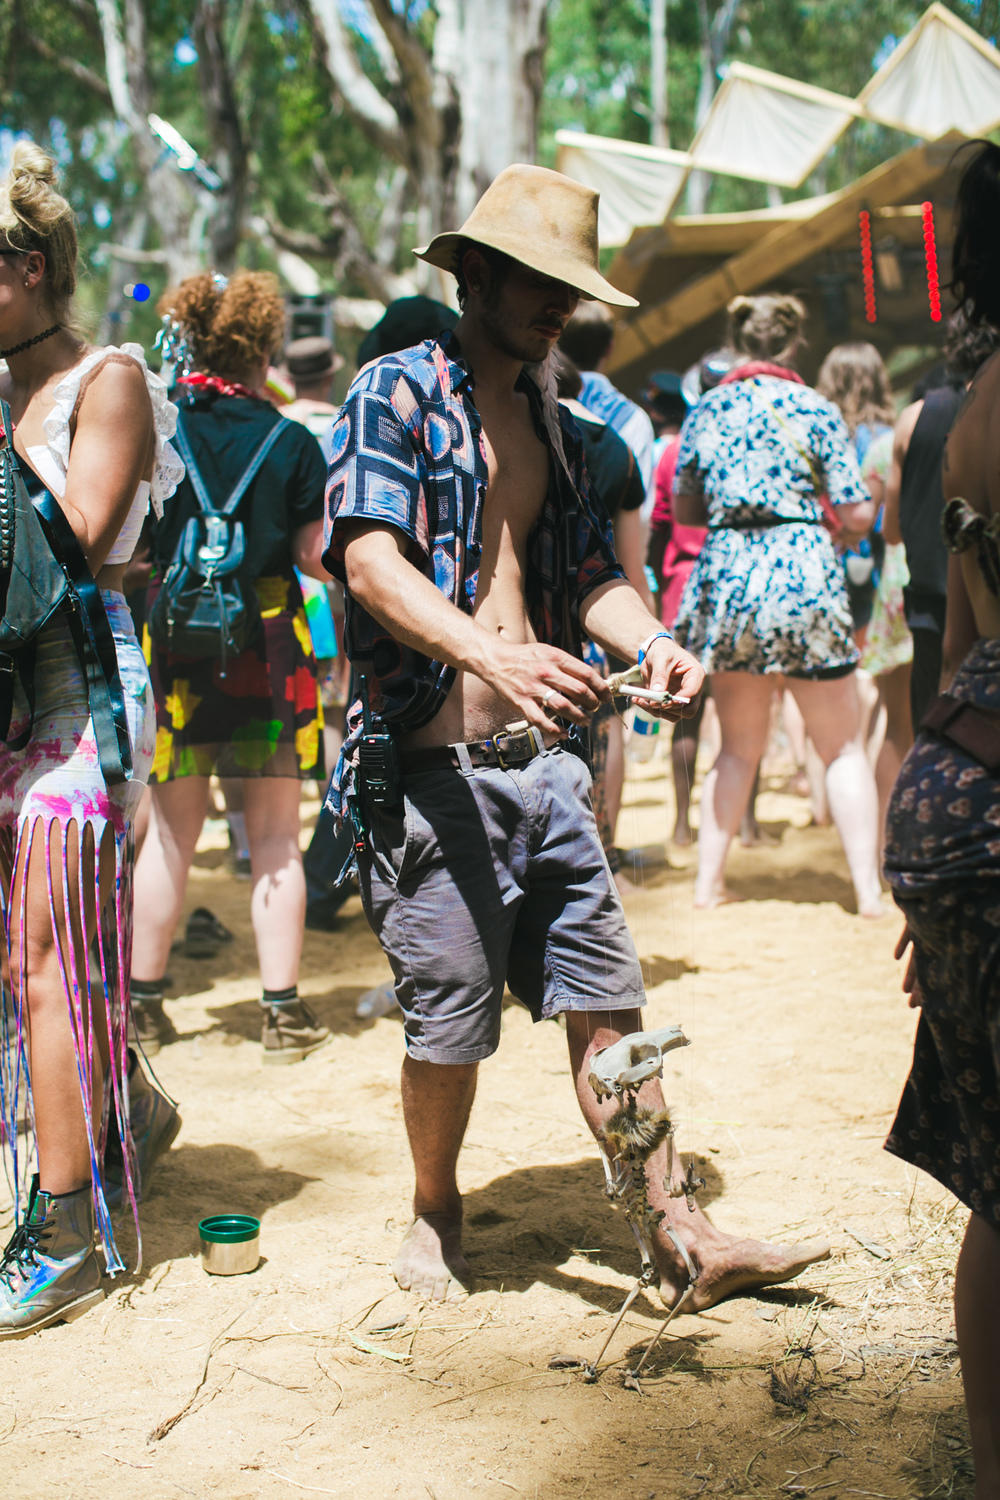 VOENA_STRAWBERRY_FIELDS_FESTIVAL_2014_PHOTOS_DOOF_AUSTRALIA-71.jpg